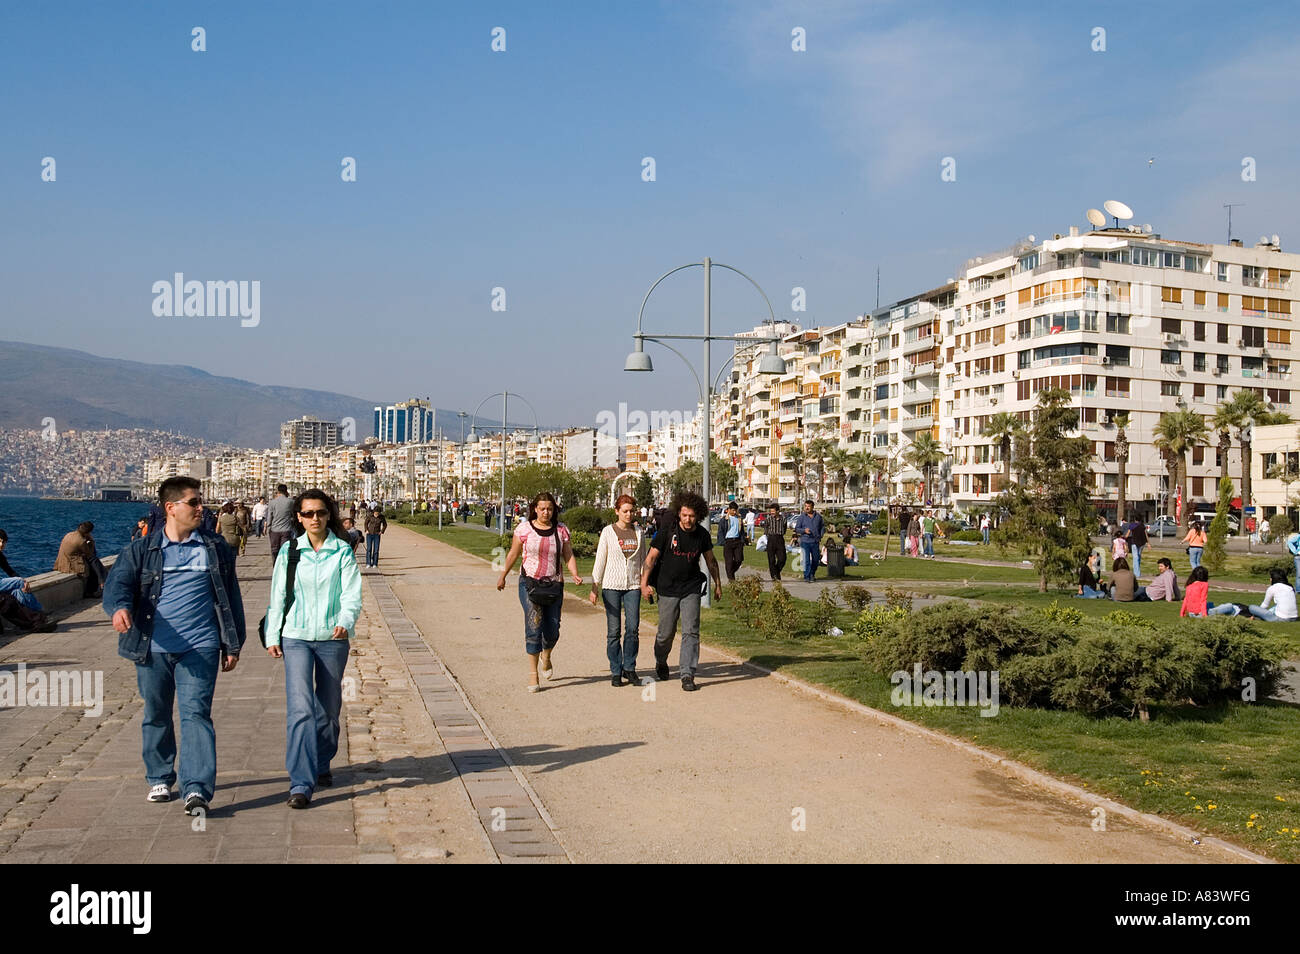 Coastal park and apartments in Kordon Izmir Turkey. - Stock Image